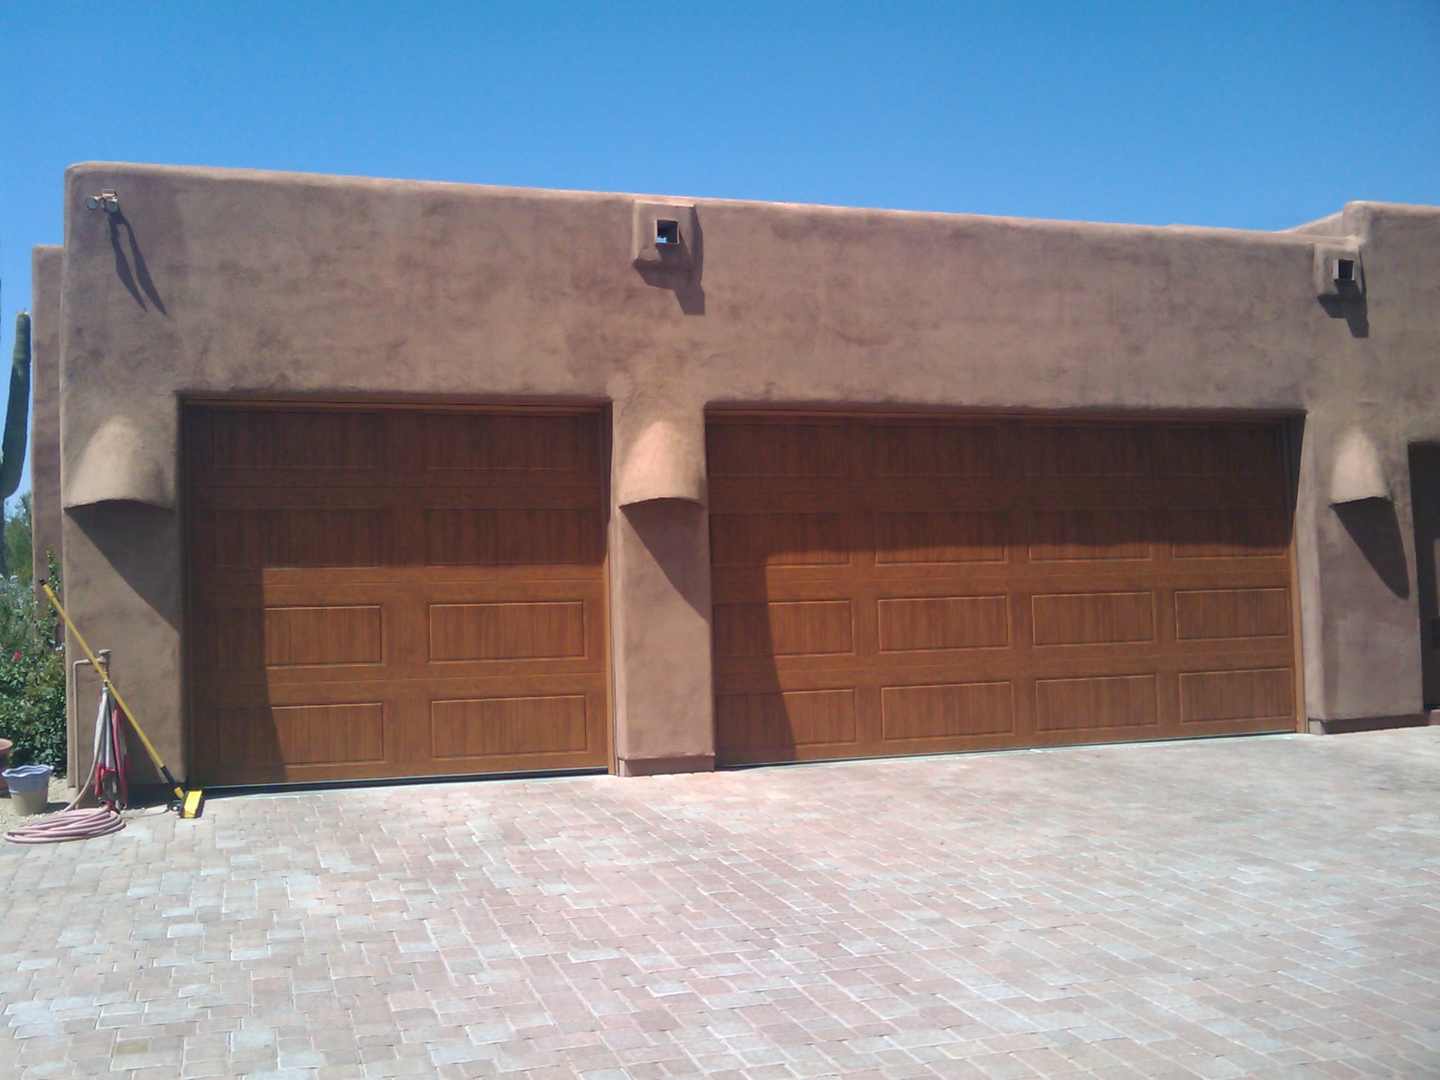 king garage door1d02c4e9cb6bb50381e3bc71bea218baAccessKeyId843833764C13F9BC0AF3disposition0alloworigin1